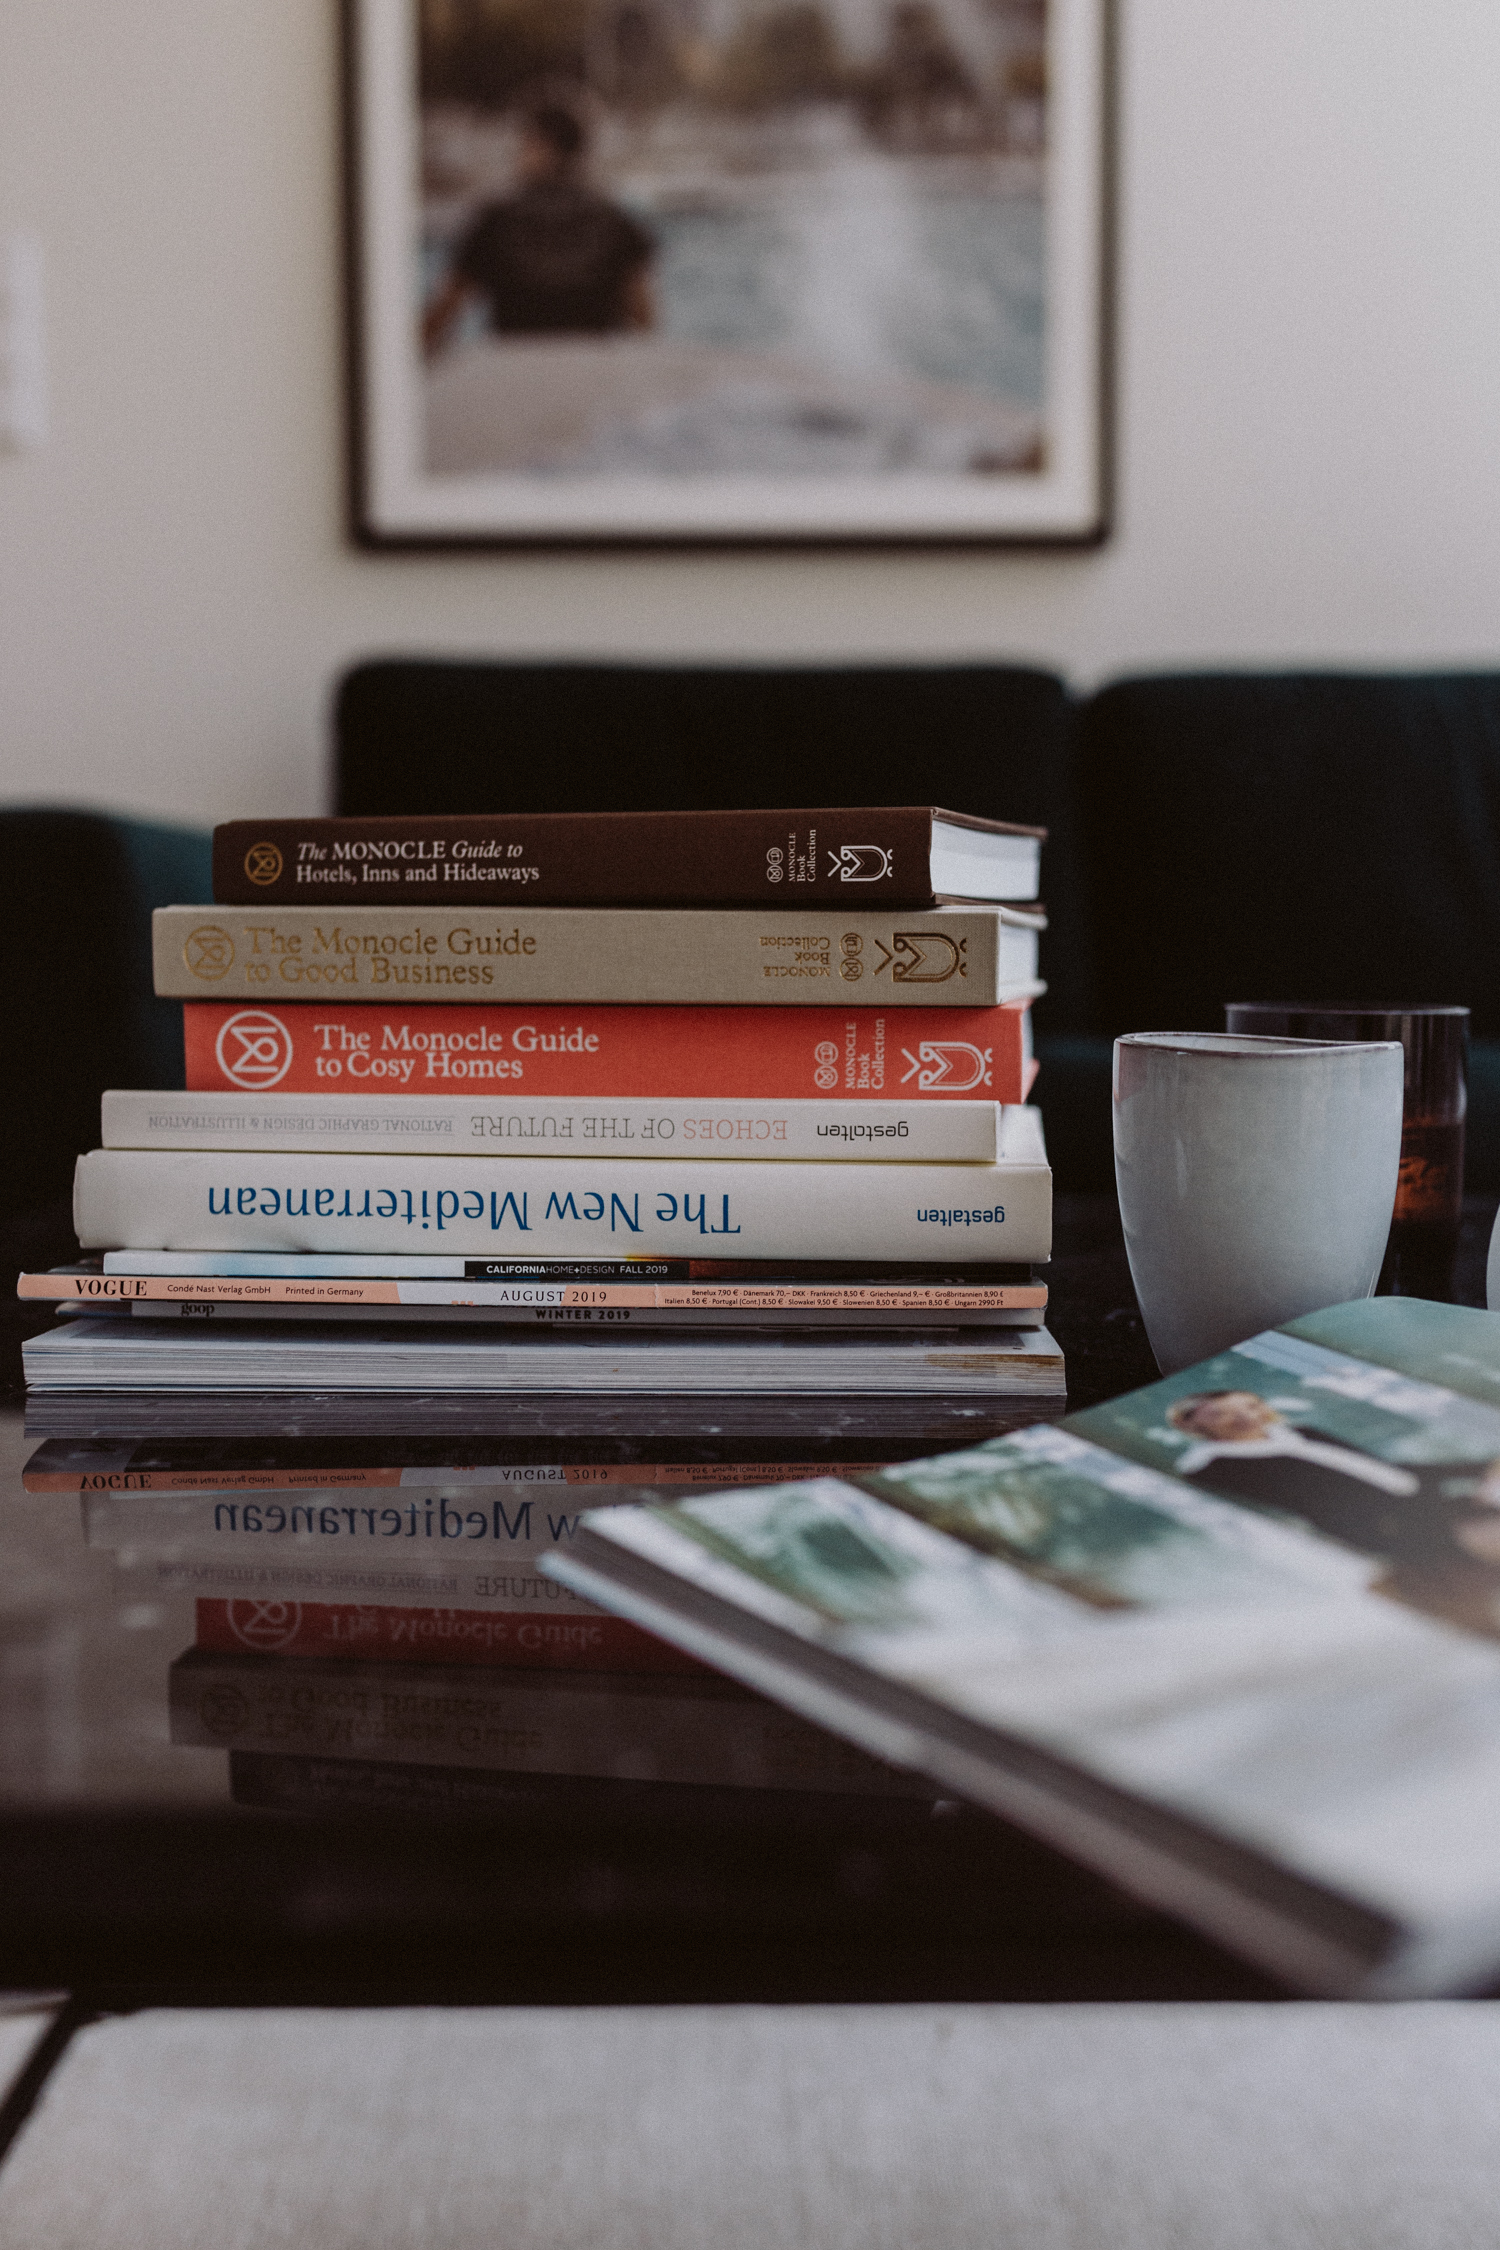 Unique Coffee Table Books to Own - Love Daily Dose